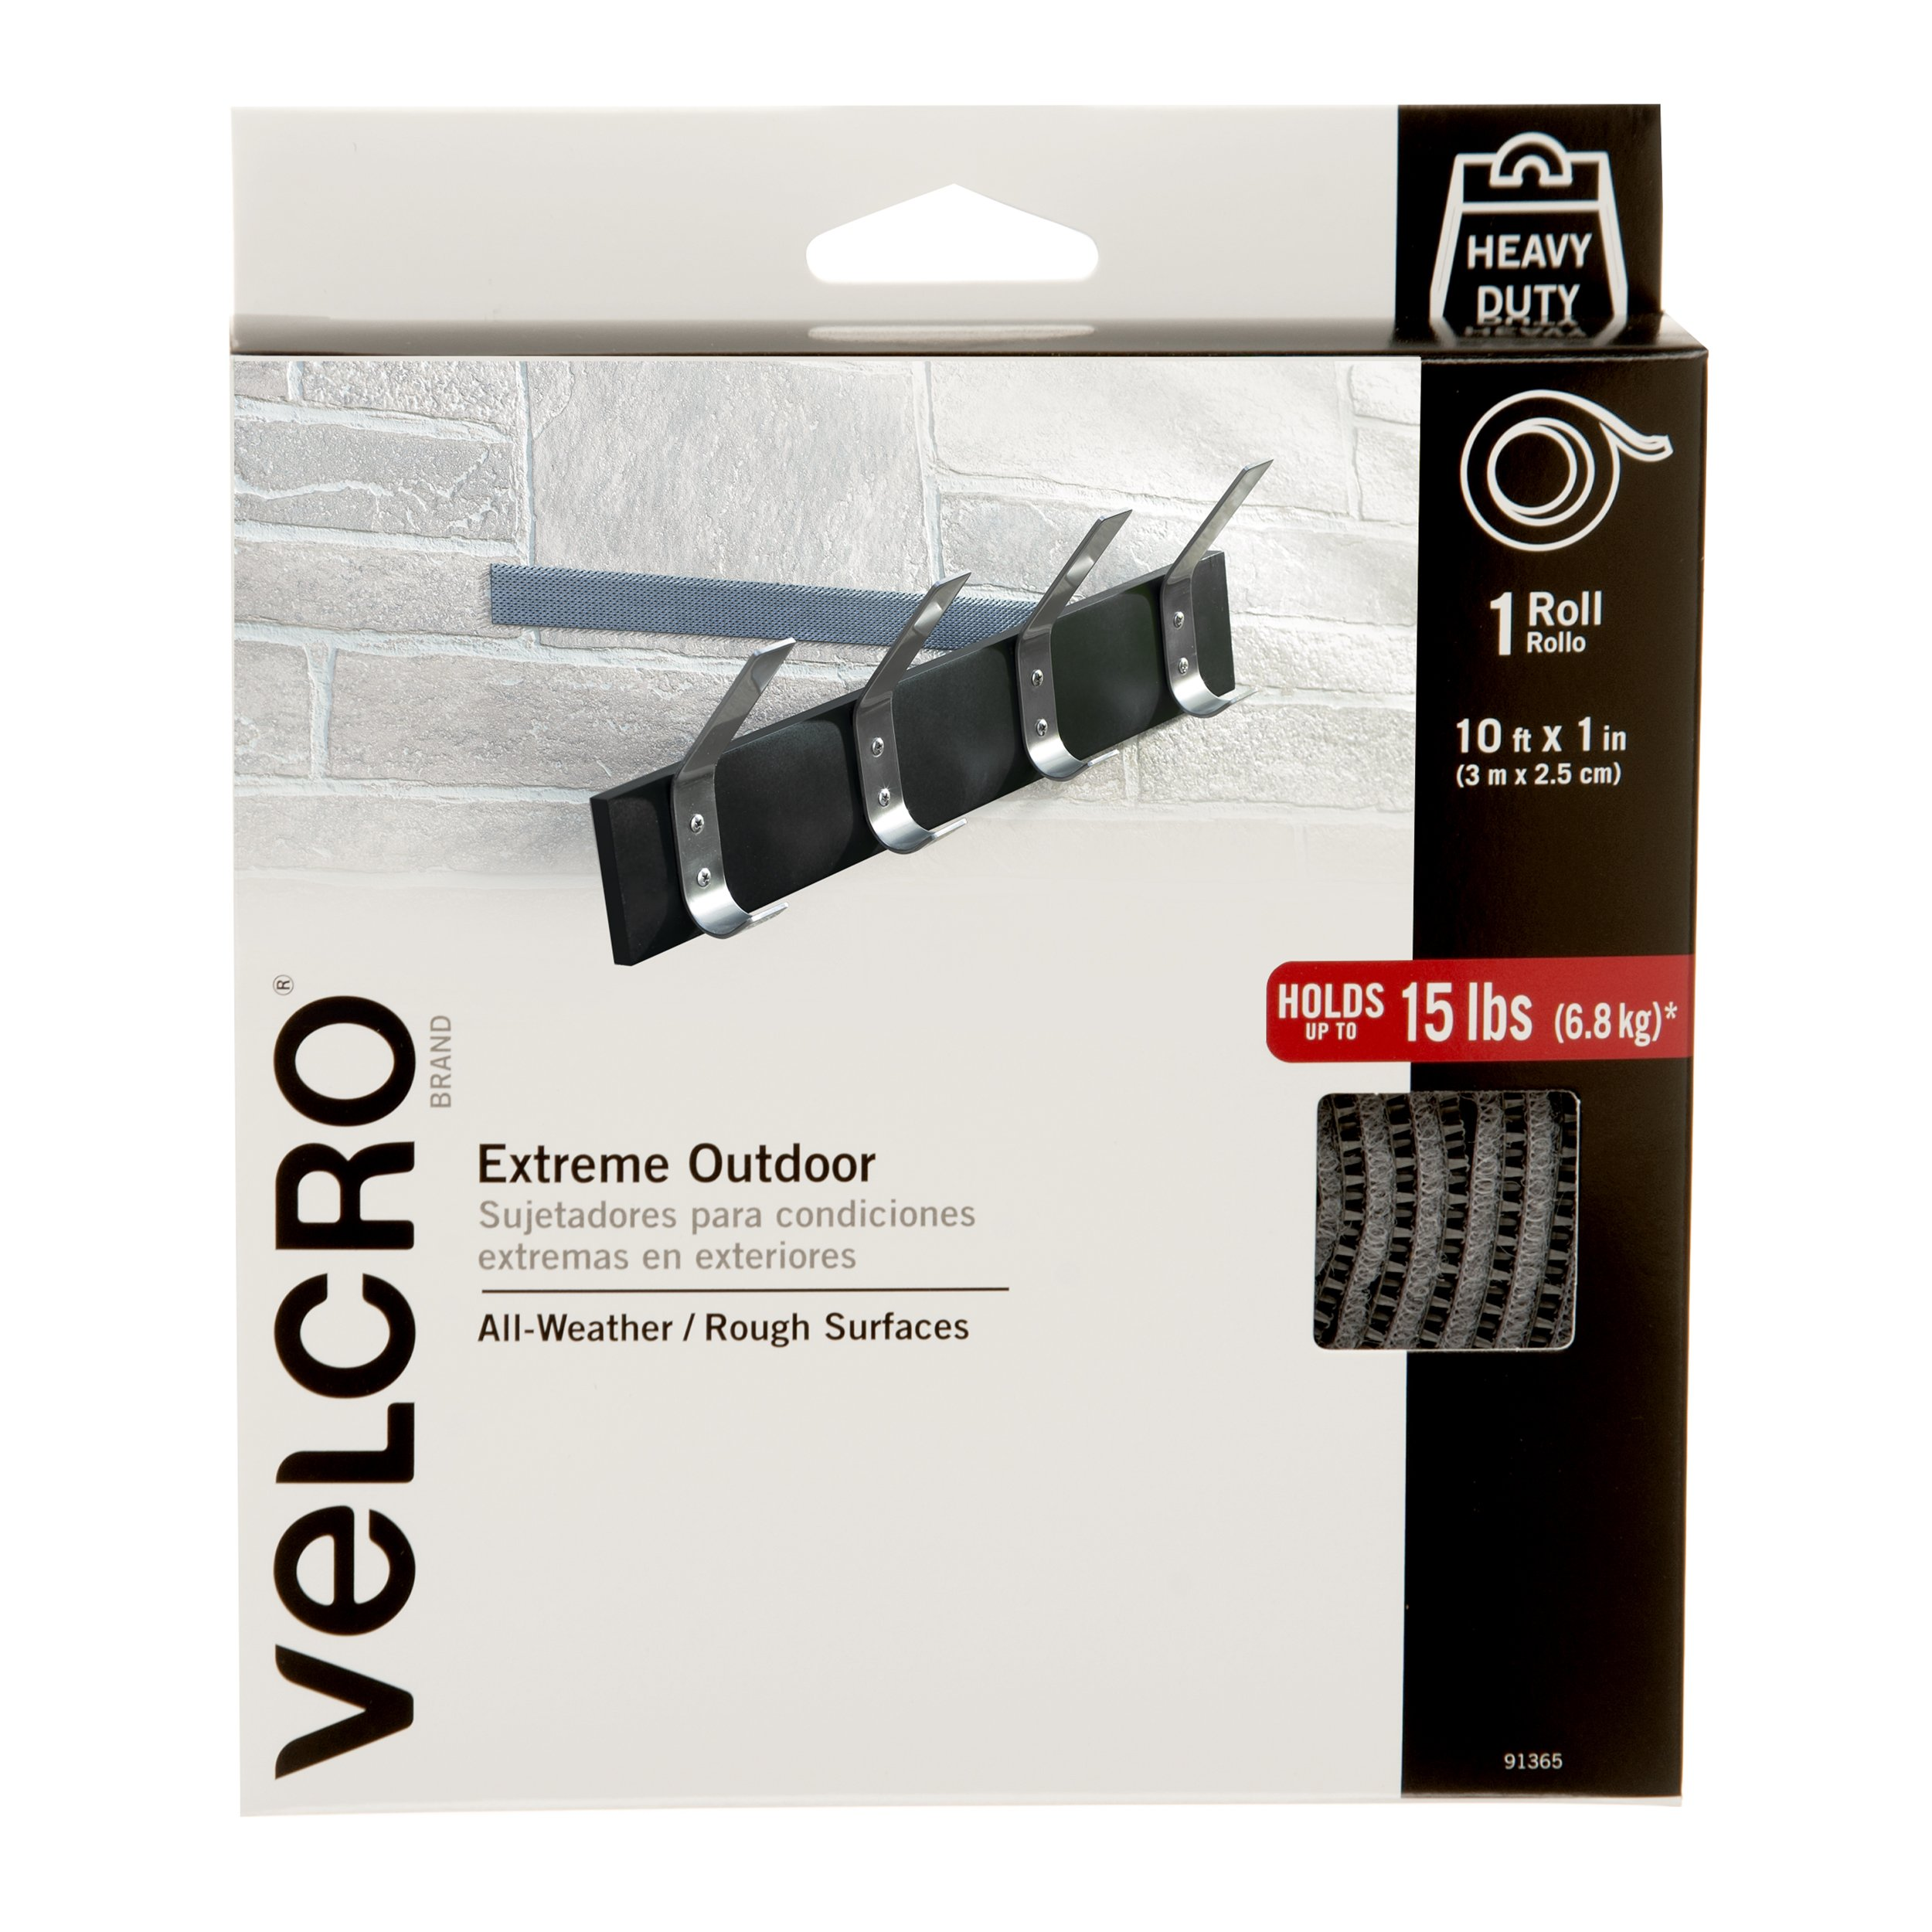 VELCRO Brand - Industrial Strength Extreme Outdoor   Heavy Duty, Superior Holding Power on Rough Surfaces   Tape – 10ft x 1in   Titanium